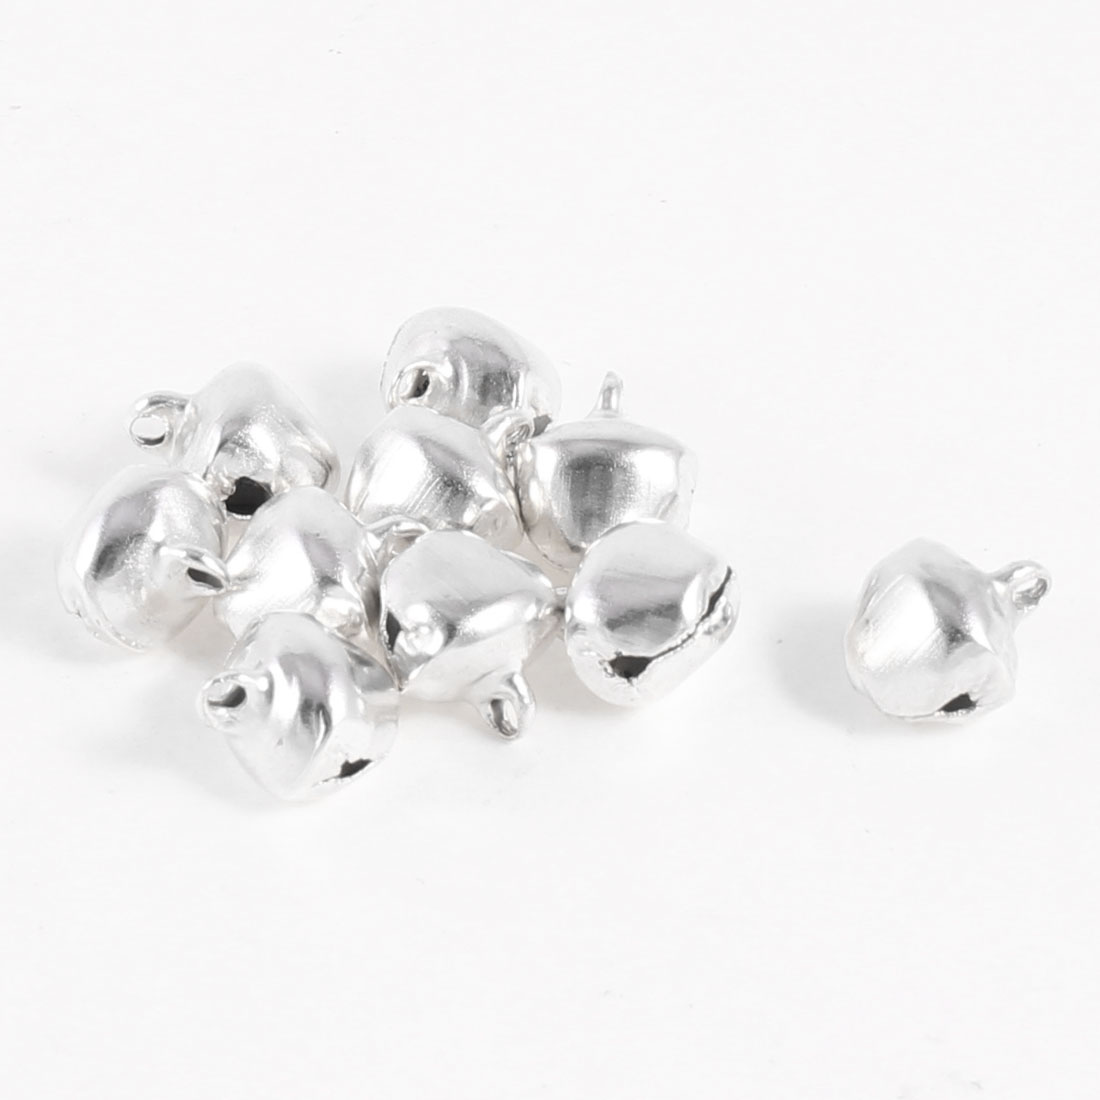 10 Pcs Xmas Tree Ornament Silver Tone Ring Bells 10mm Dia Xmzic